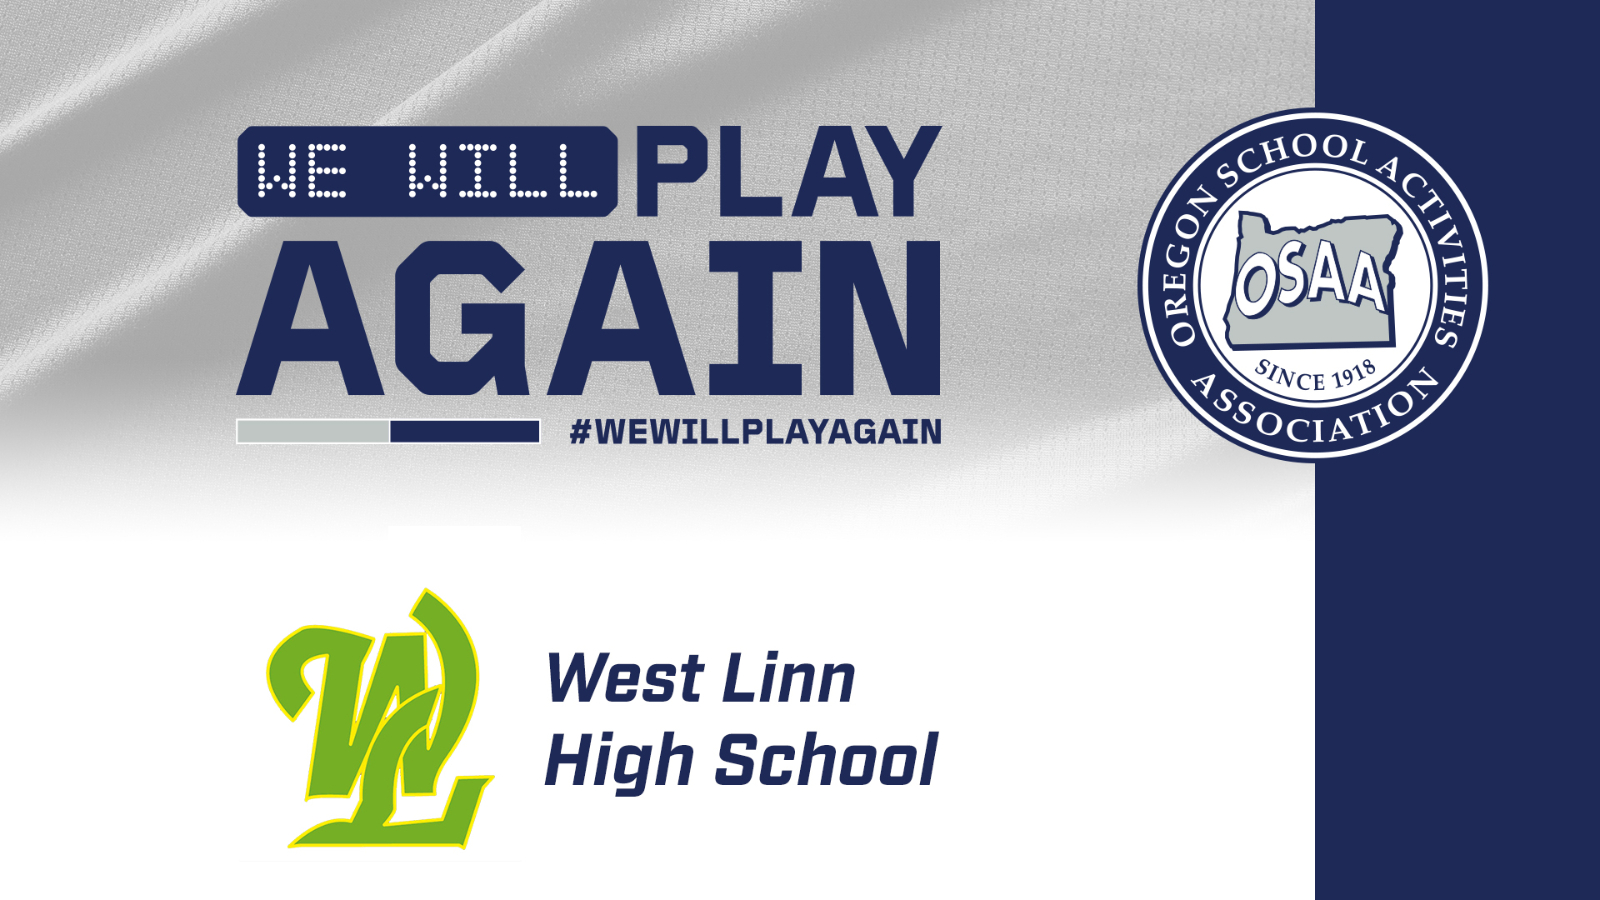 We Will Play AGAIN